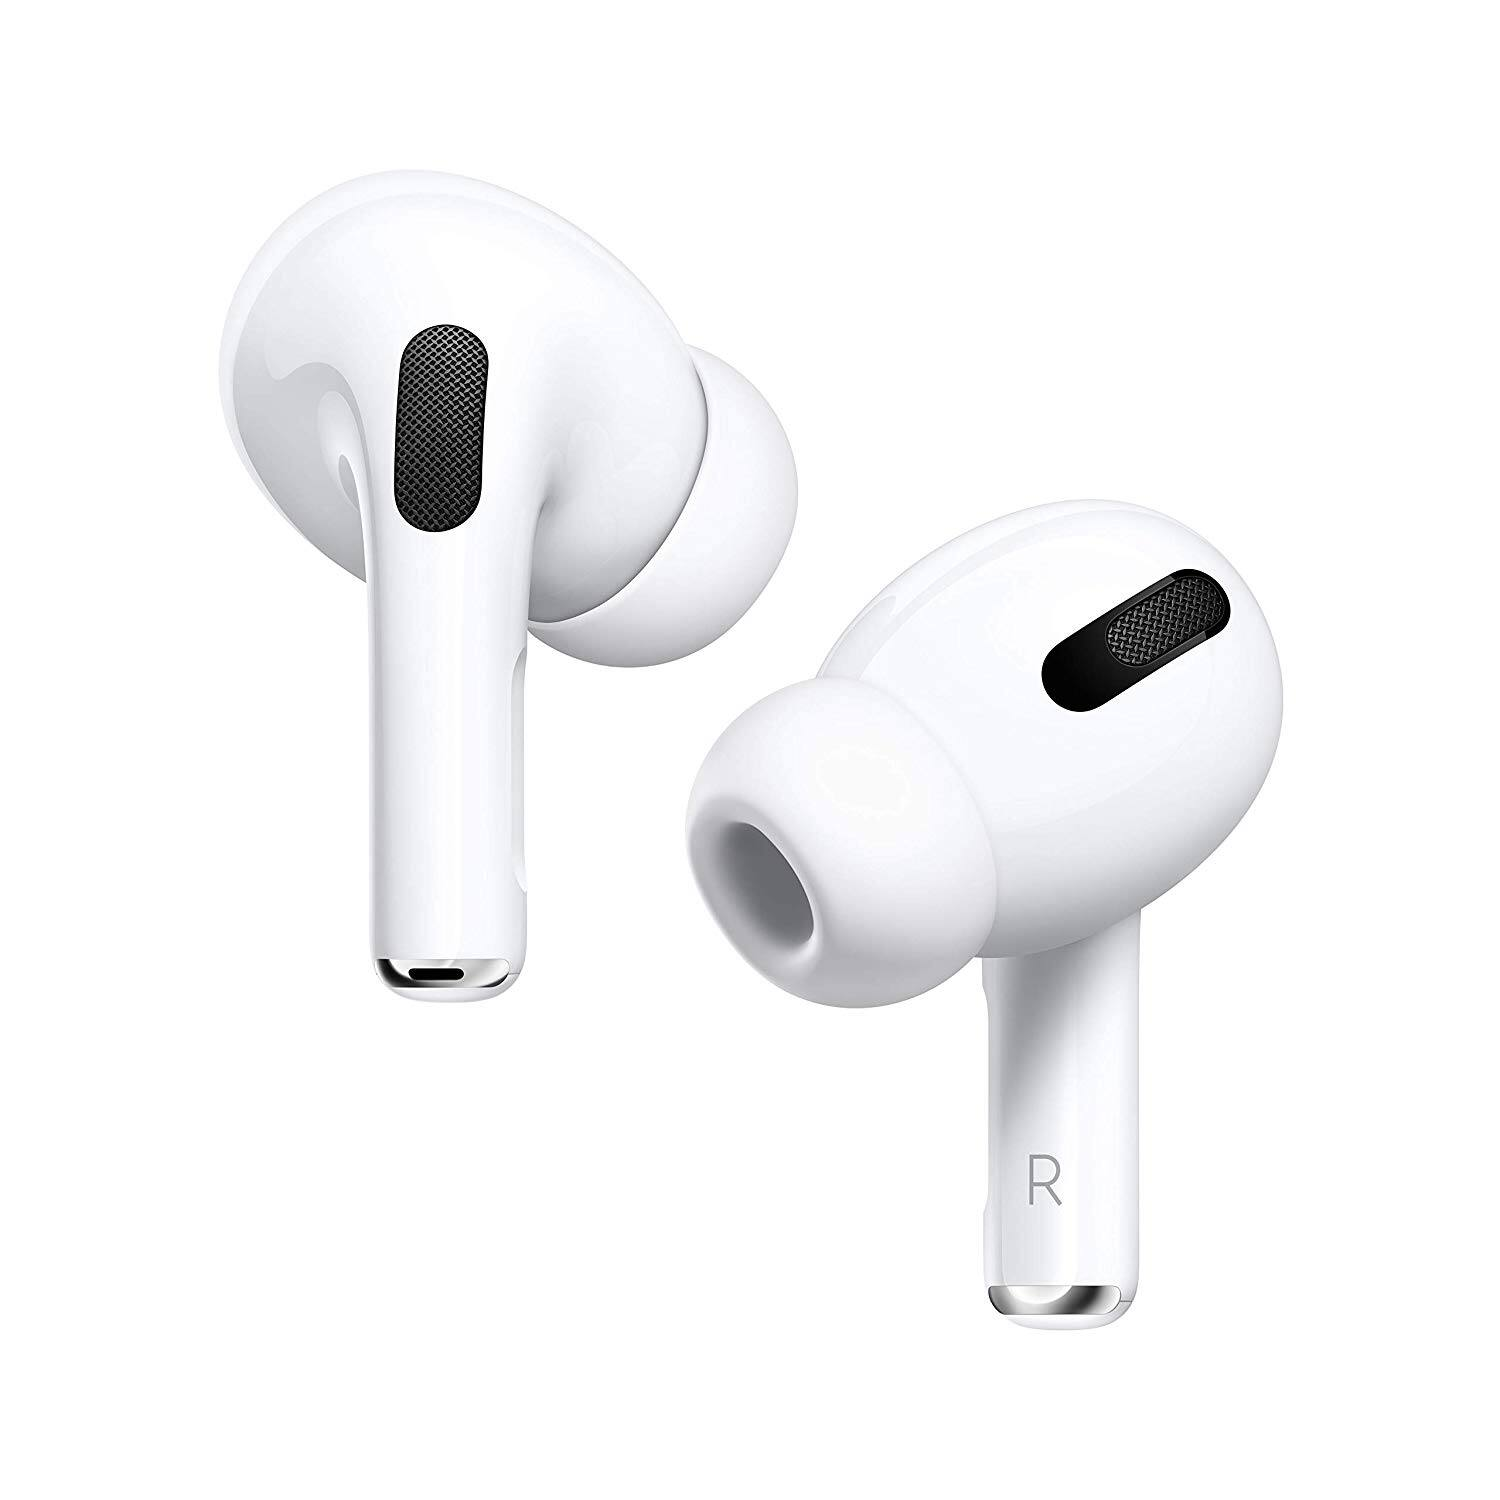 Apple AirPods Pro - $234.98